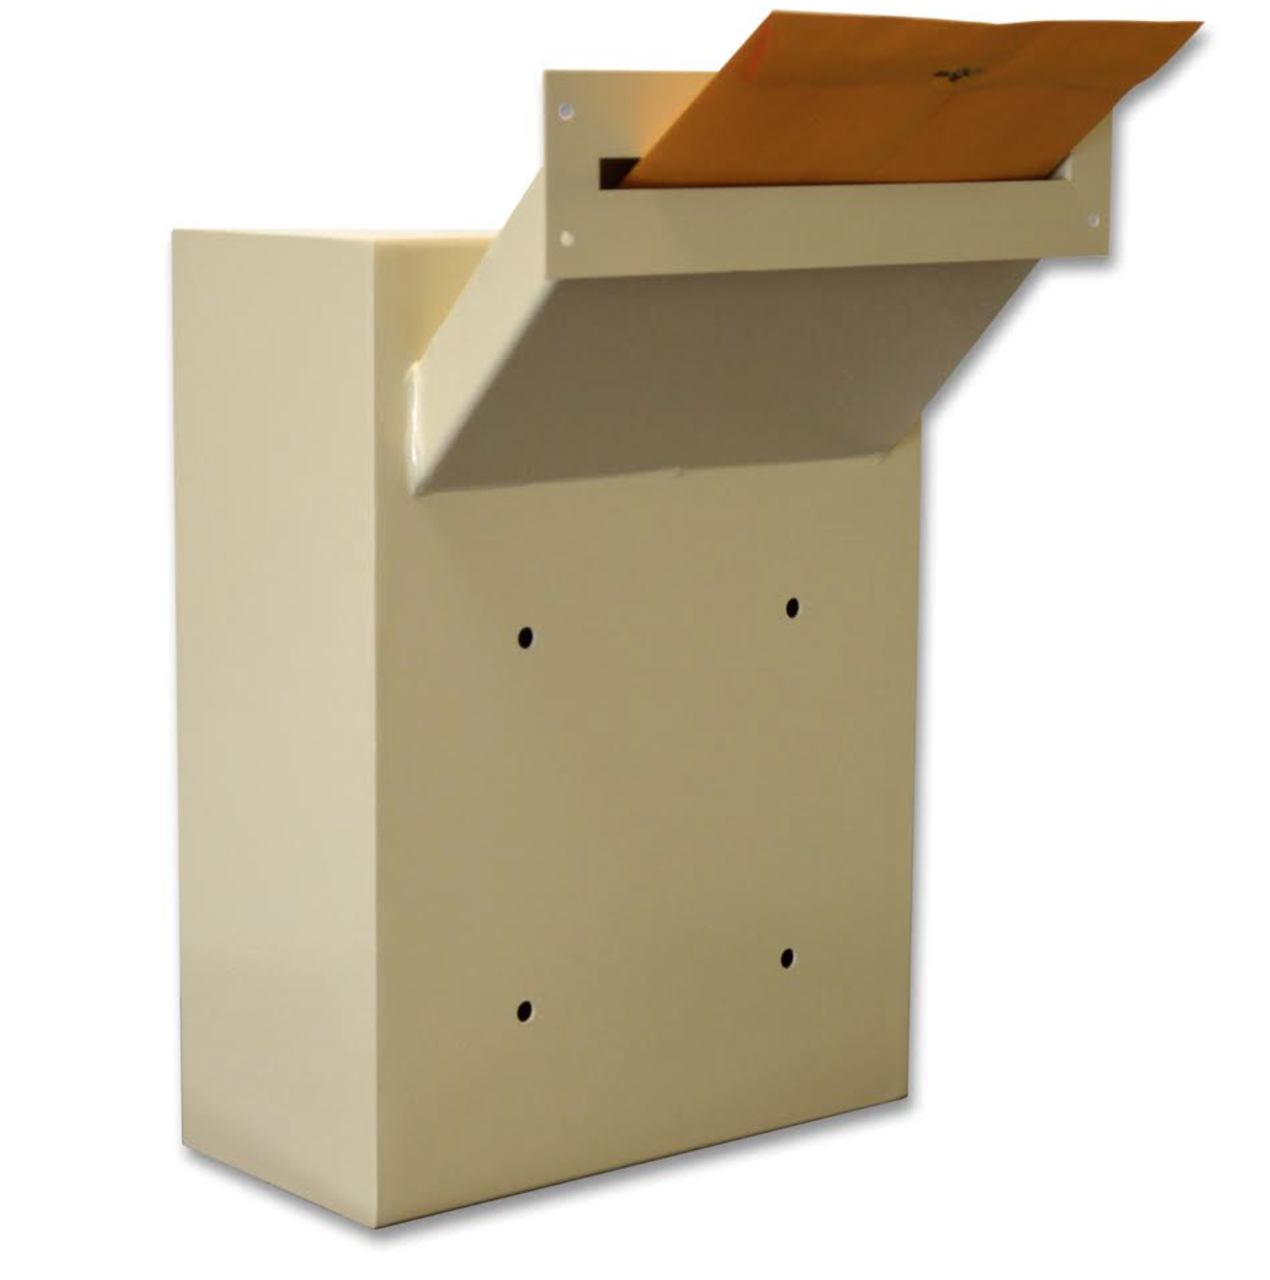 Through Wall Adjustable Chute Drop Box Locking Security